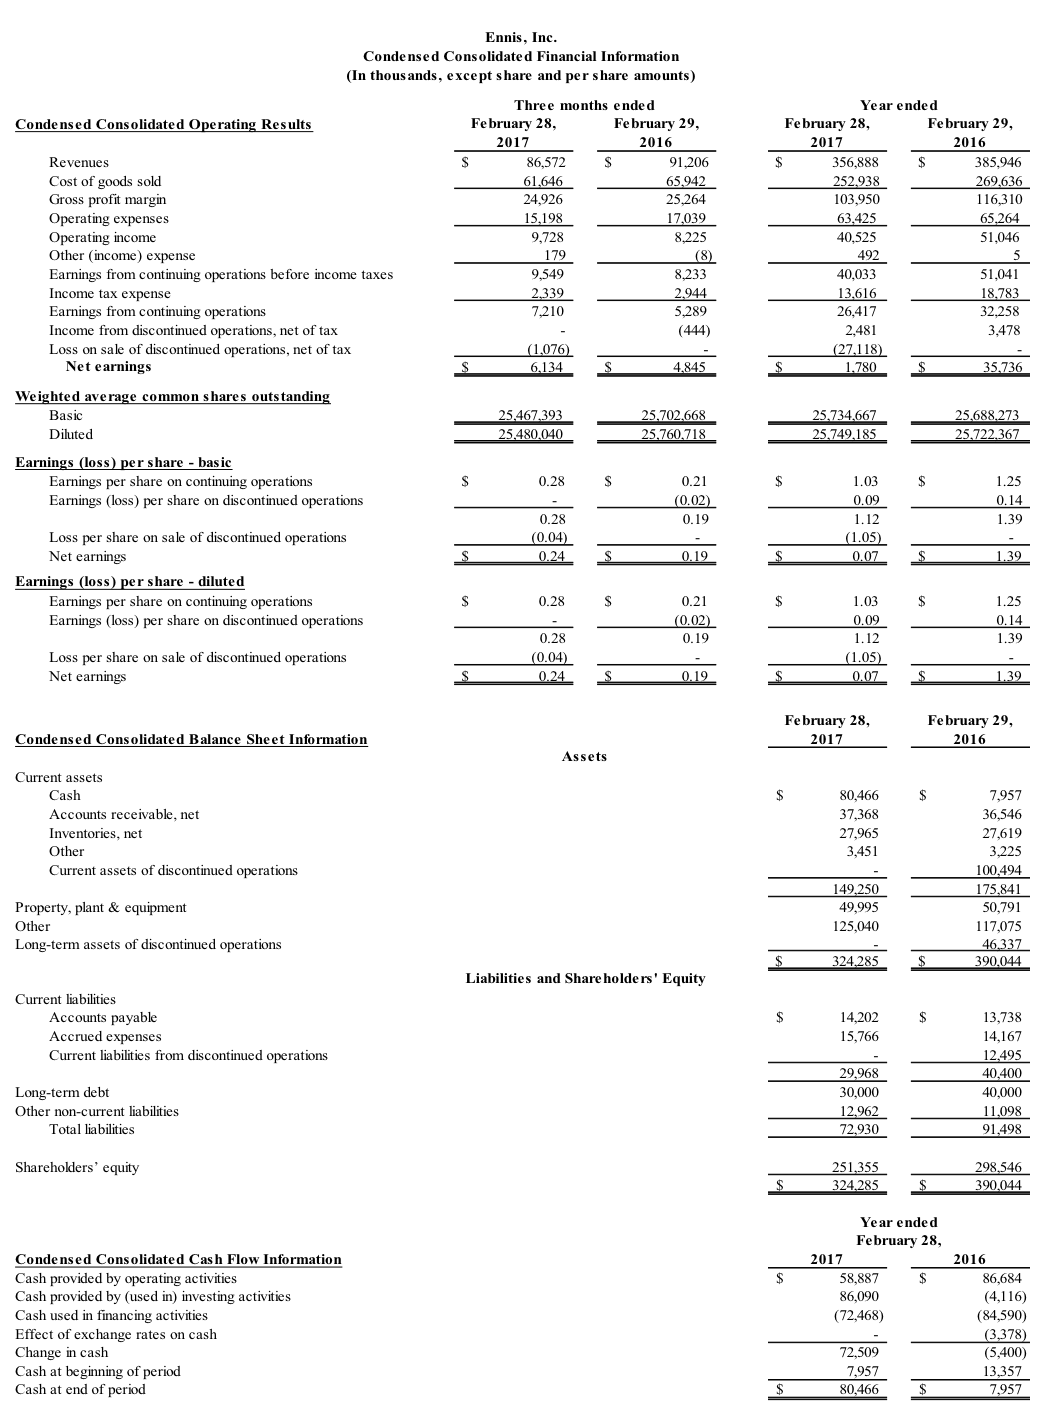 Condensed Consolidated Financial Information